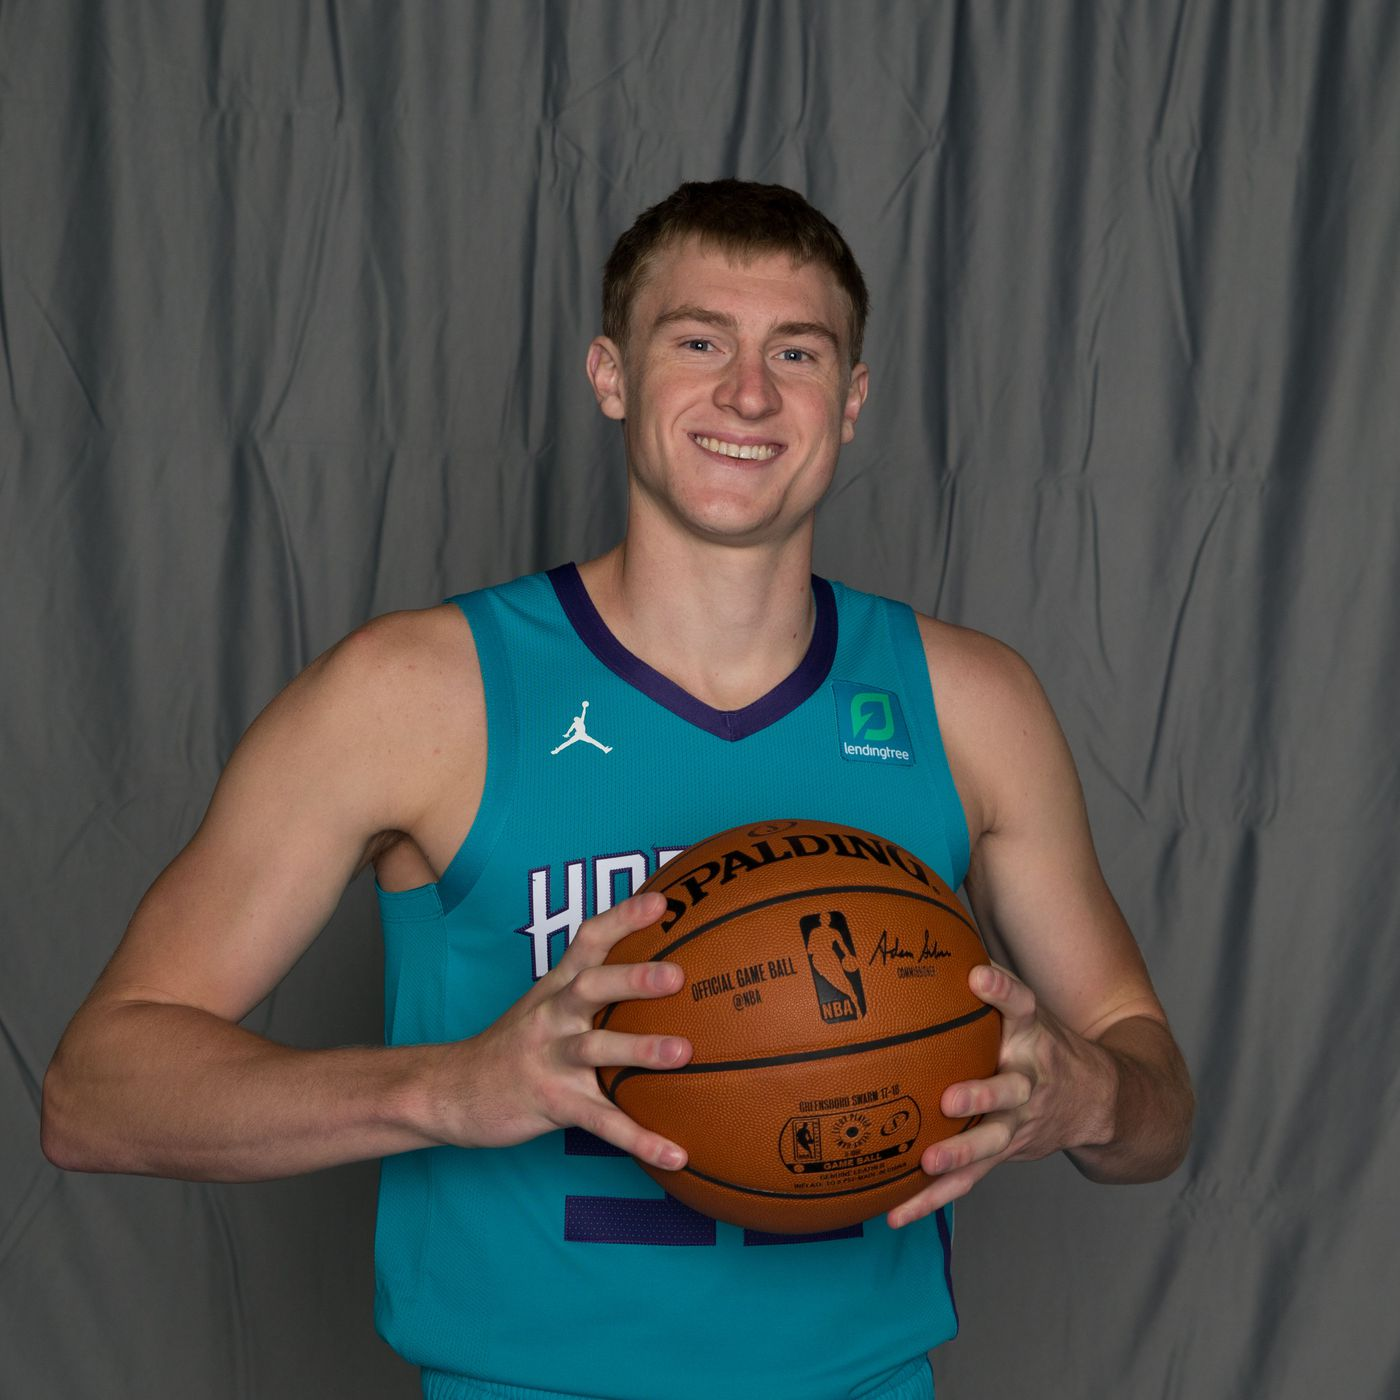 786c066b1ed Charlotte Hornets transfer J.P Macura to NBA roster - At The Hive